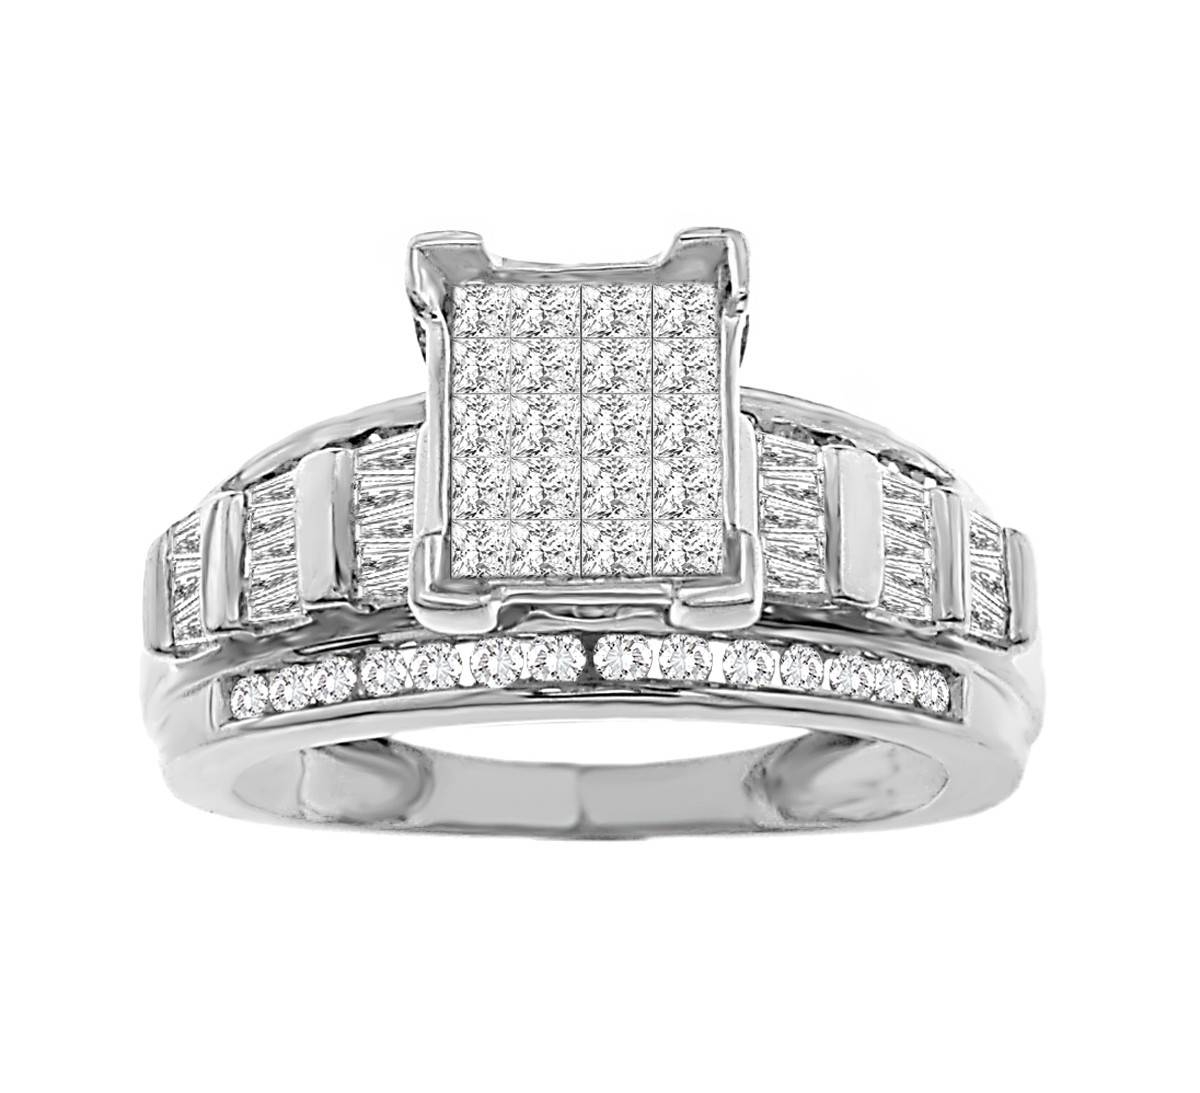 1.00 Tcw Women's Diamond Engagement Ring Set In 10K White Gold Pertaining To Diamonds Engagement Rings (Gallery 1 of 15)